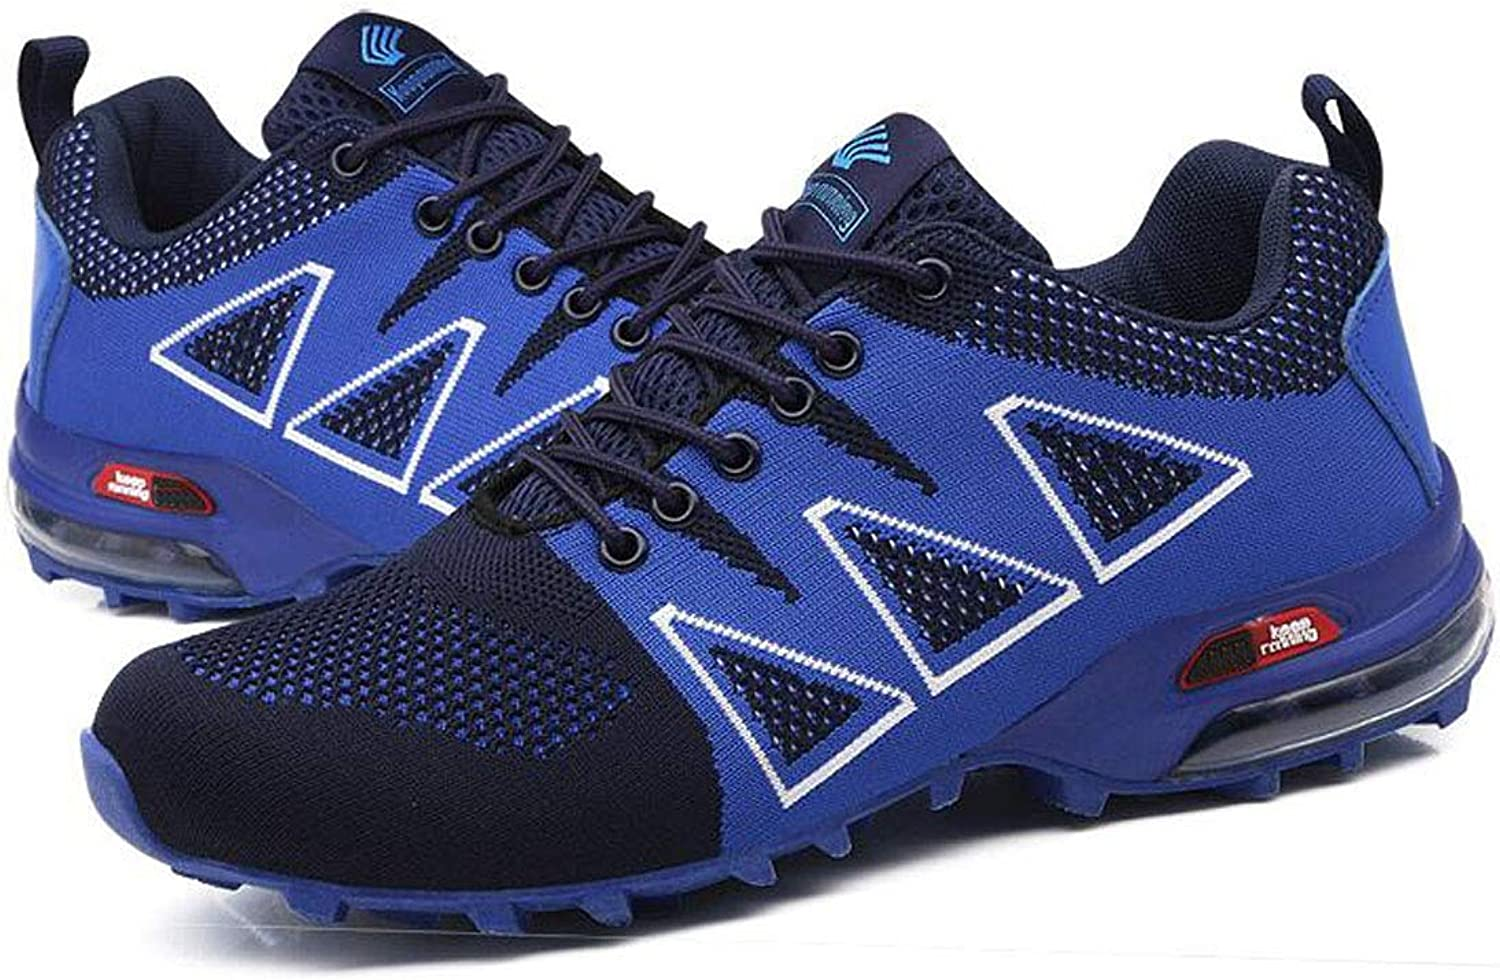 FGSJEJ Summer Hiking shoes Men's Trail Running shoes Non-slip Breathable Sneakers (color   bluee, Size   39)